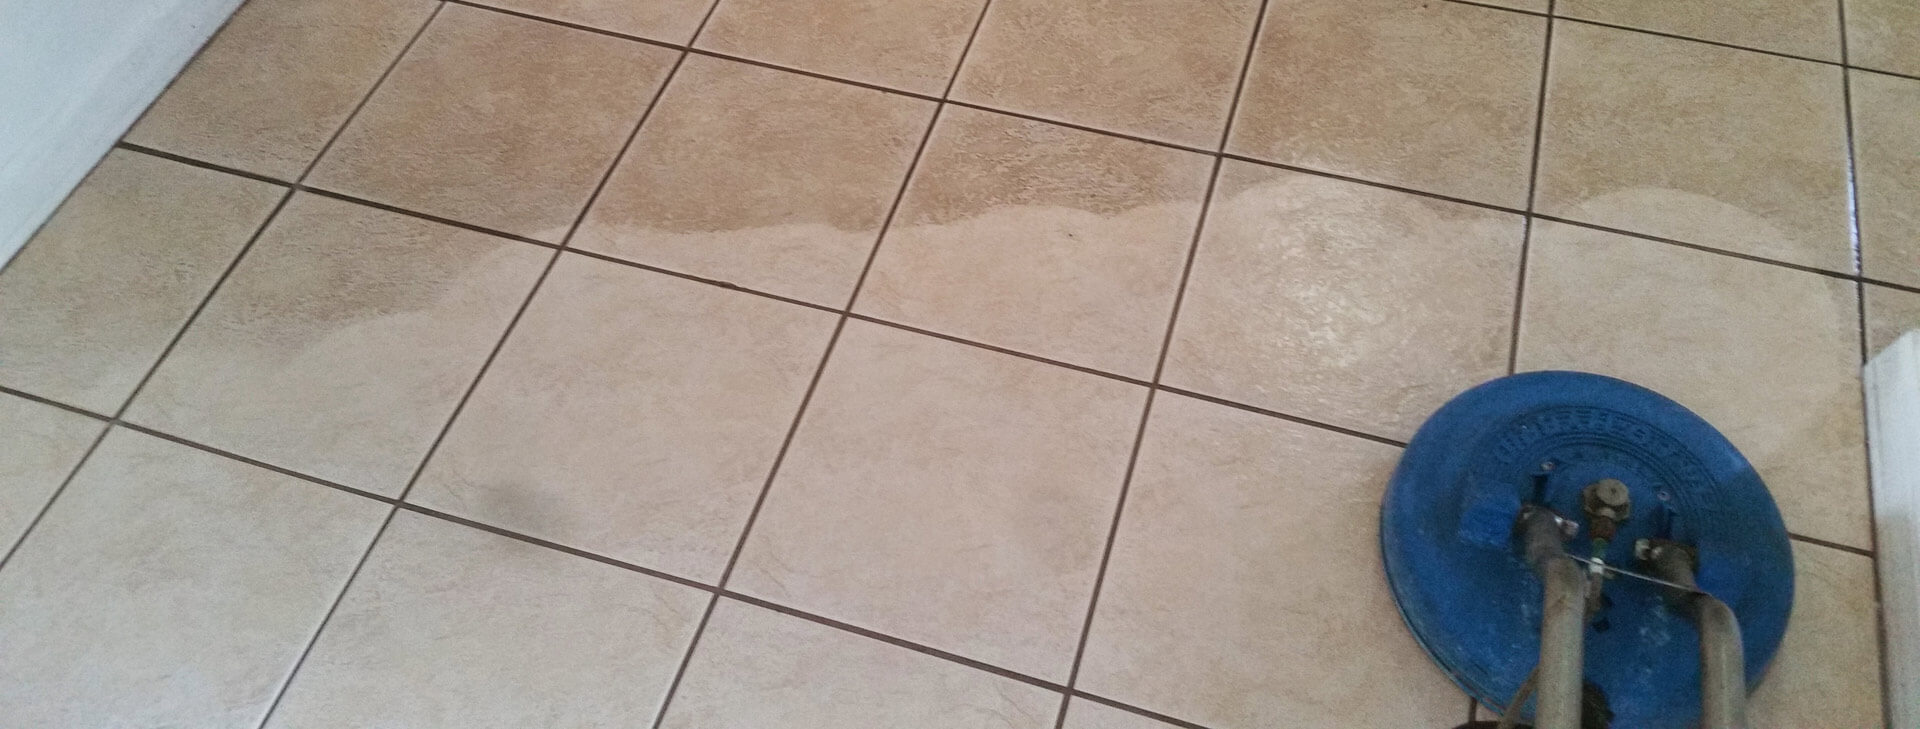 cleaning-tile